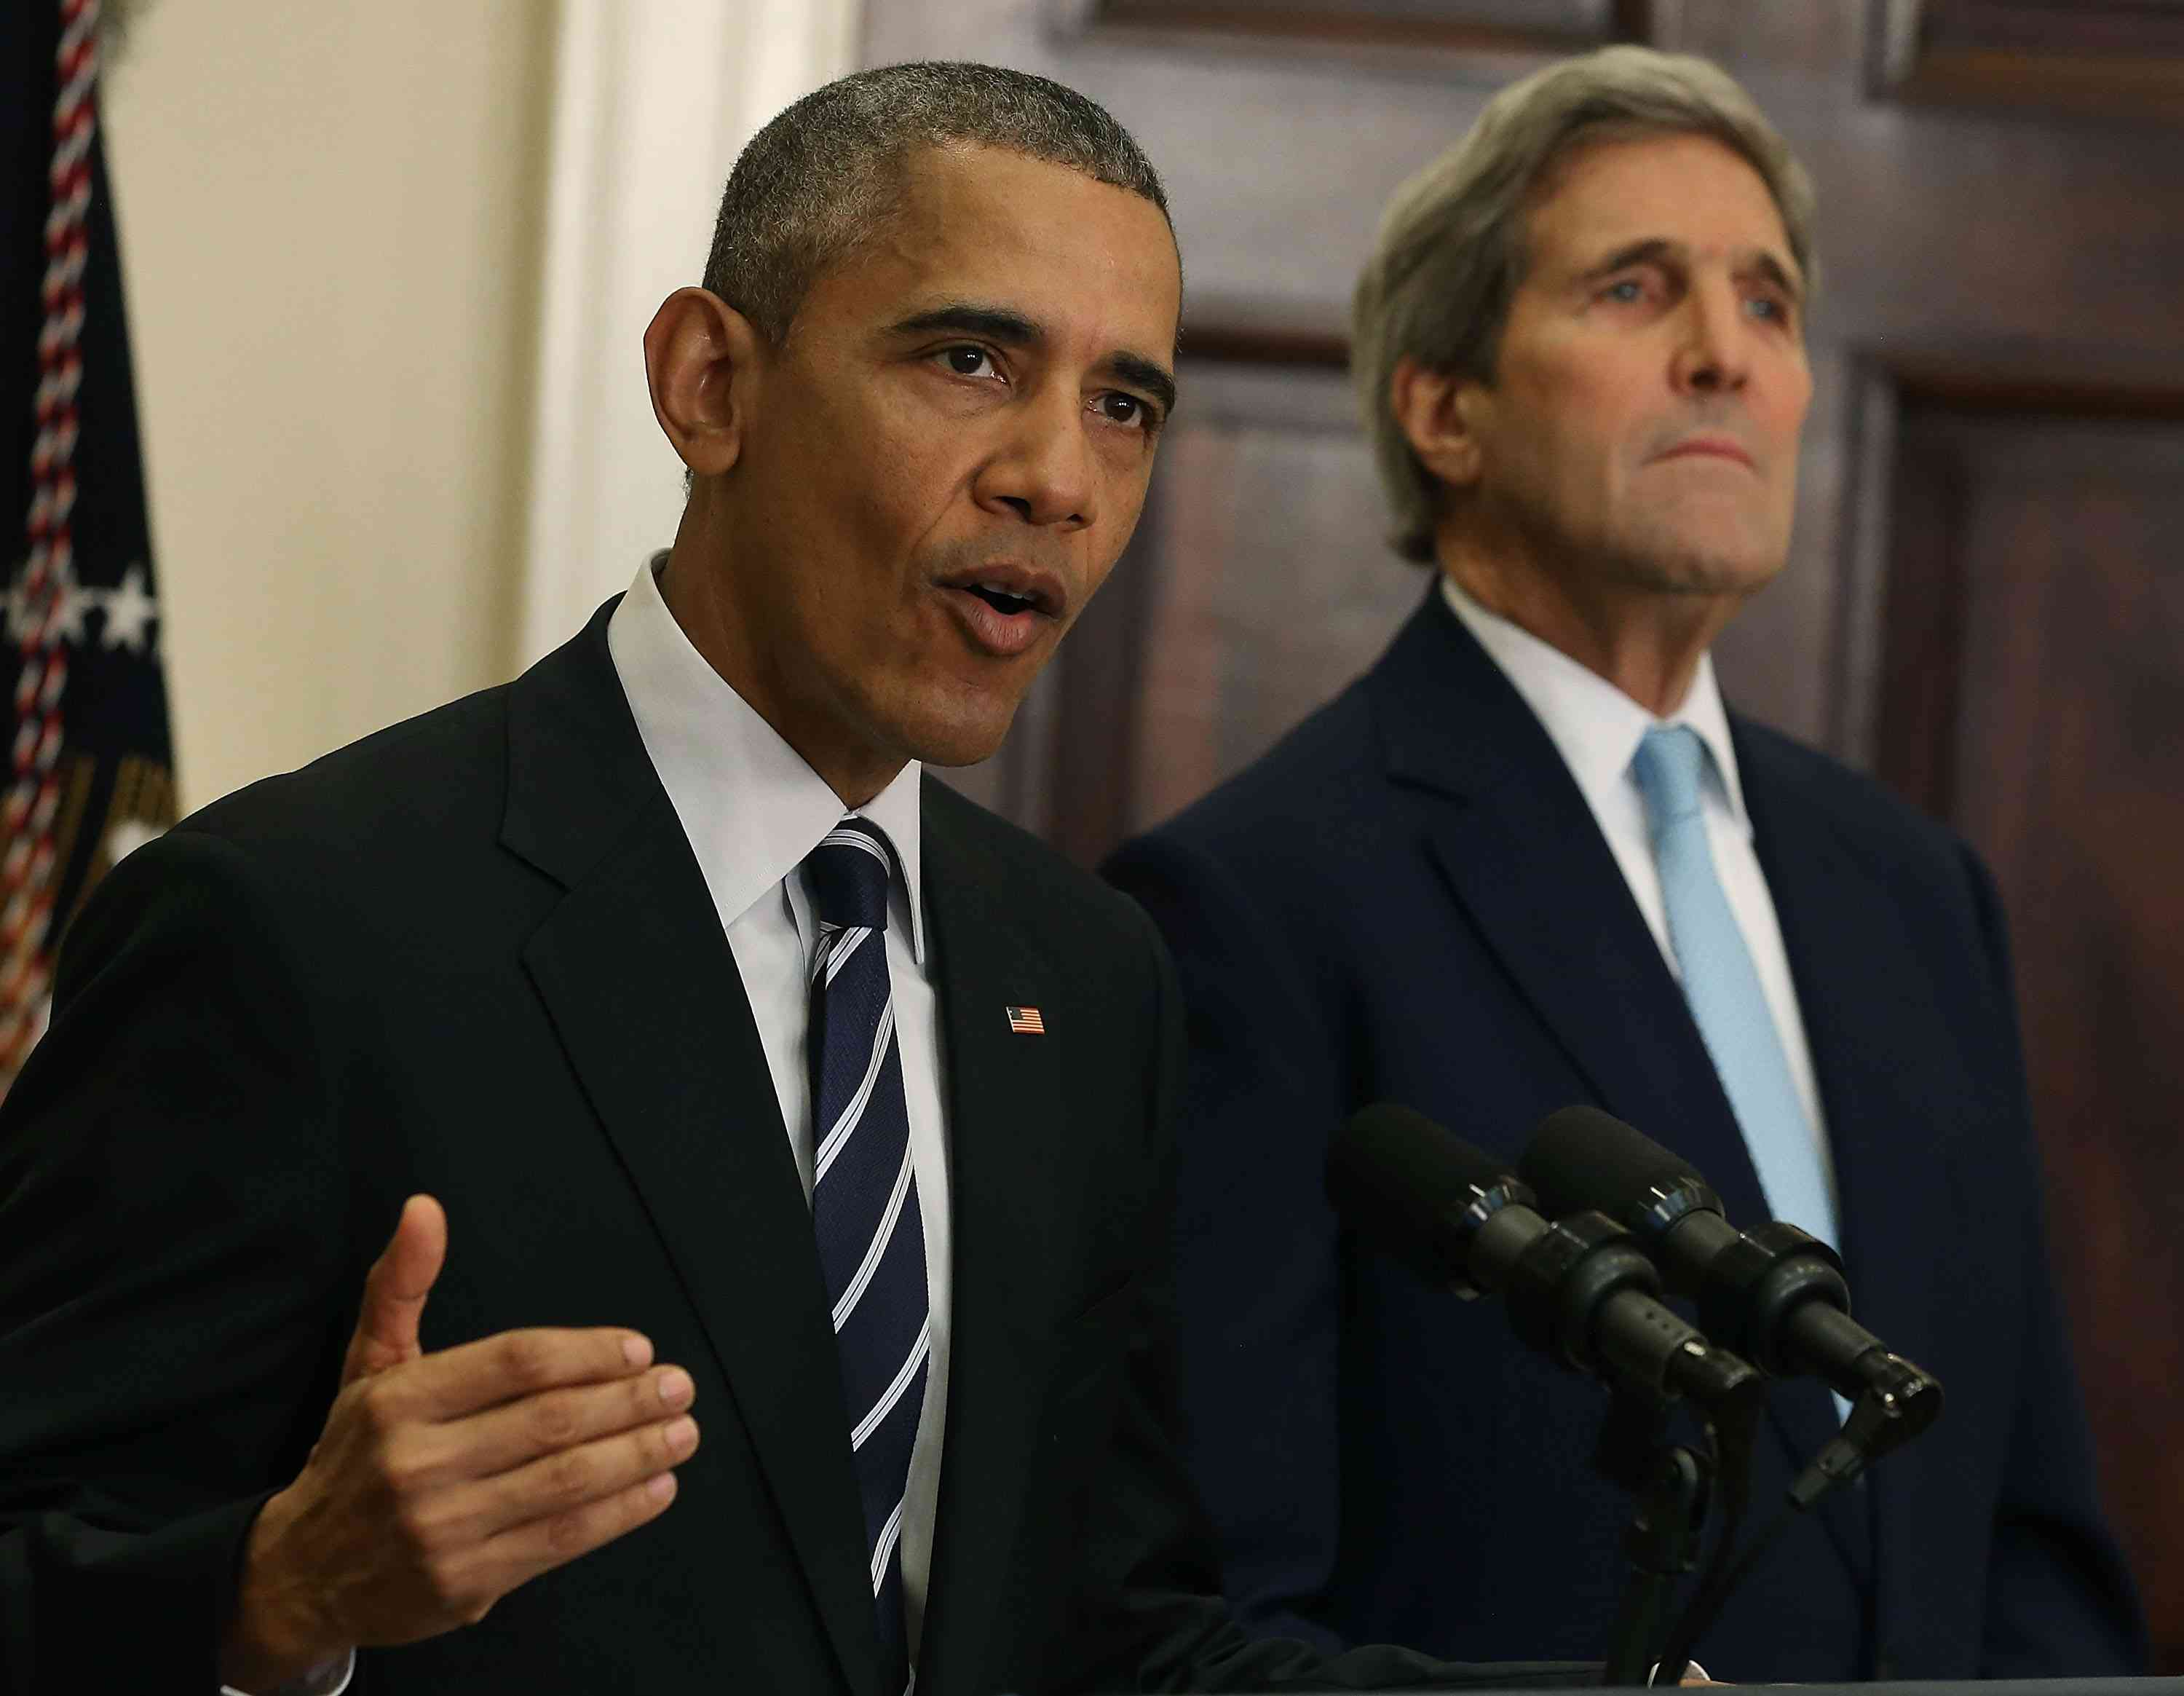 President Obama giving a speech with Secretary of State John Kerry in the background.